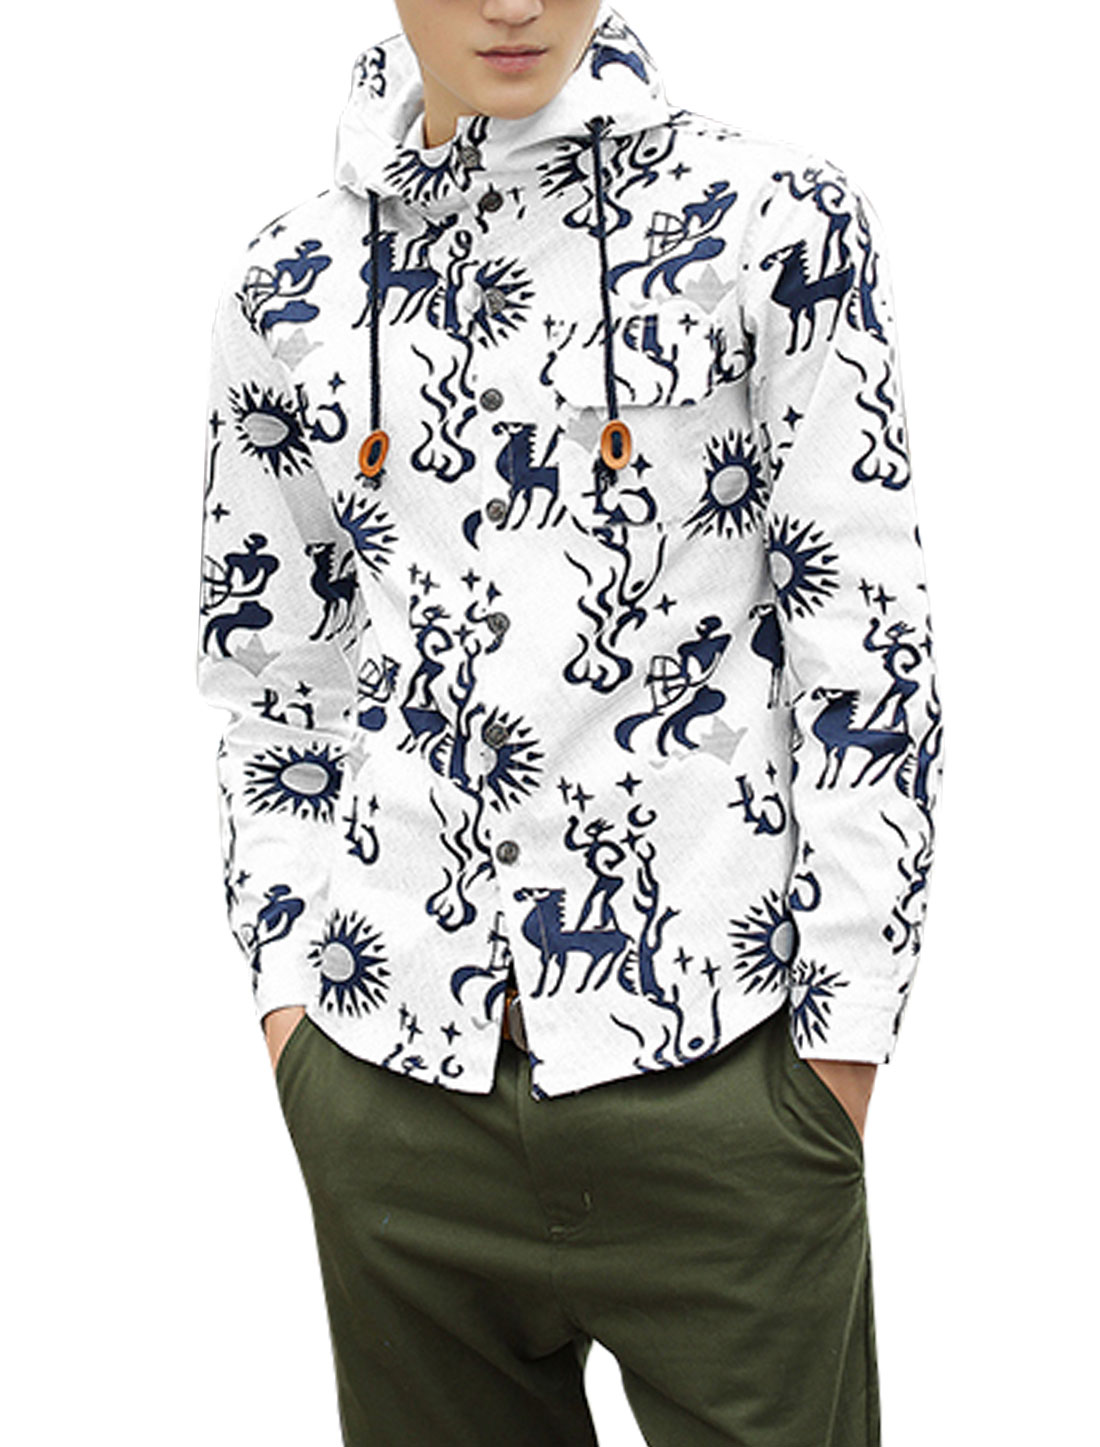 Men Single Breasted Chest Pocket Light Hoodie Jacket Beige Navy Blue M